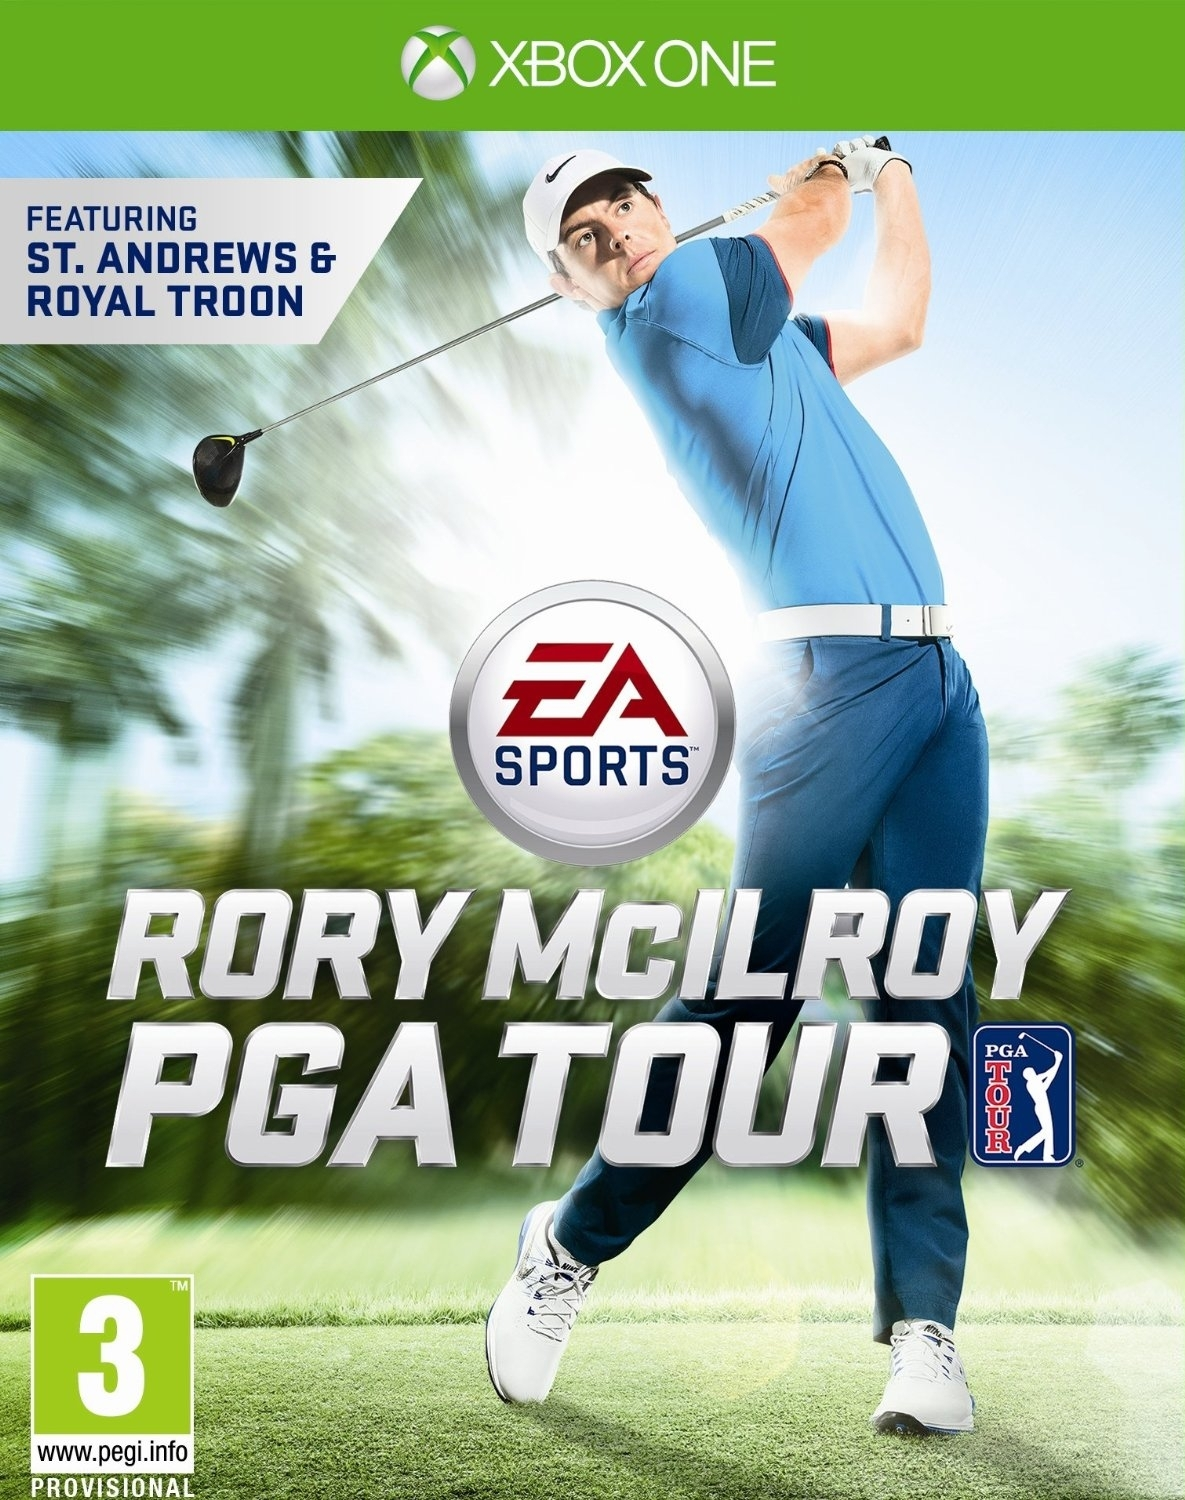 Rory Mcllroy PGA Tour (Xbox One)